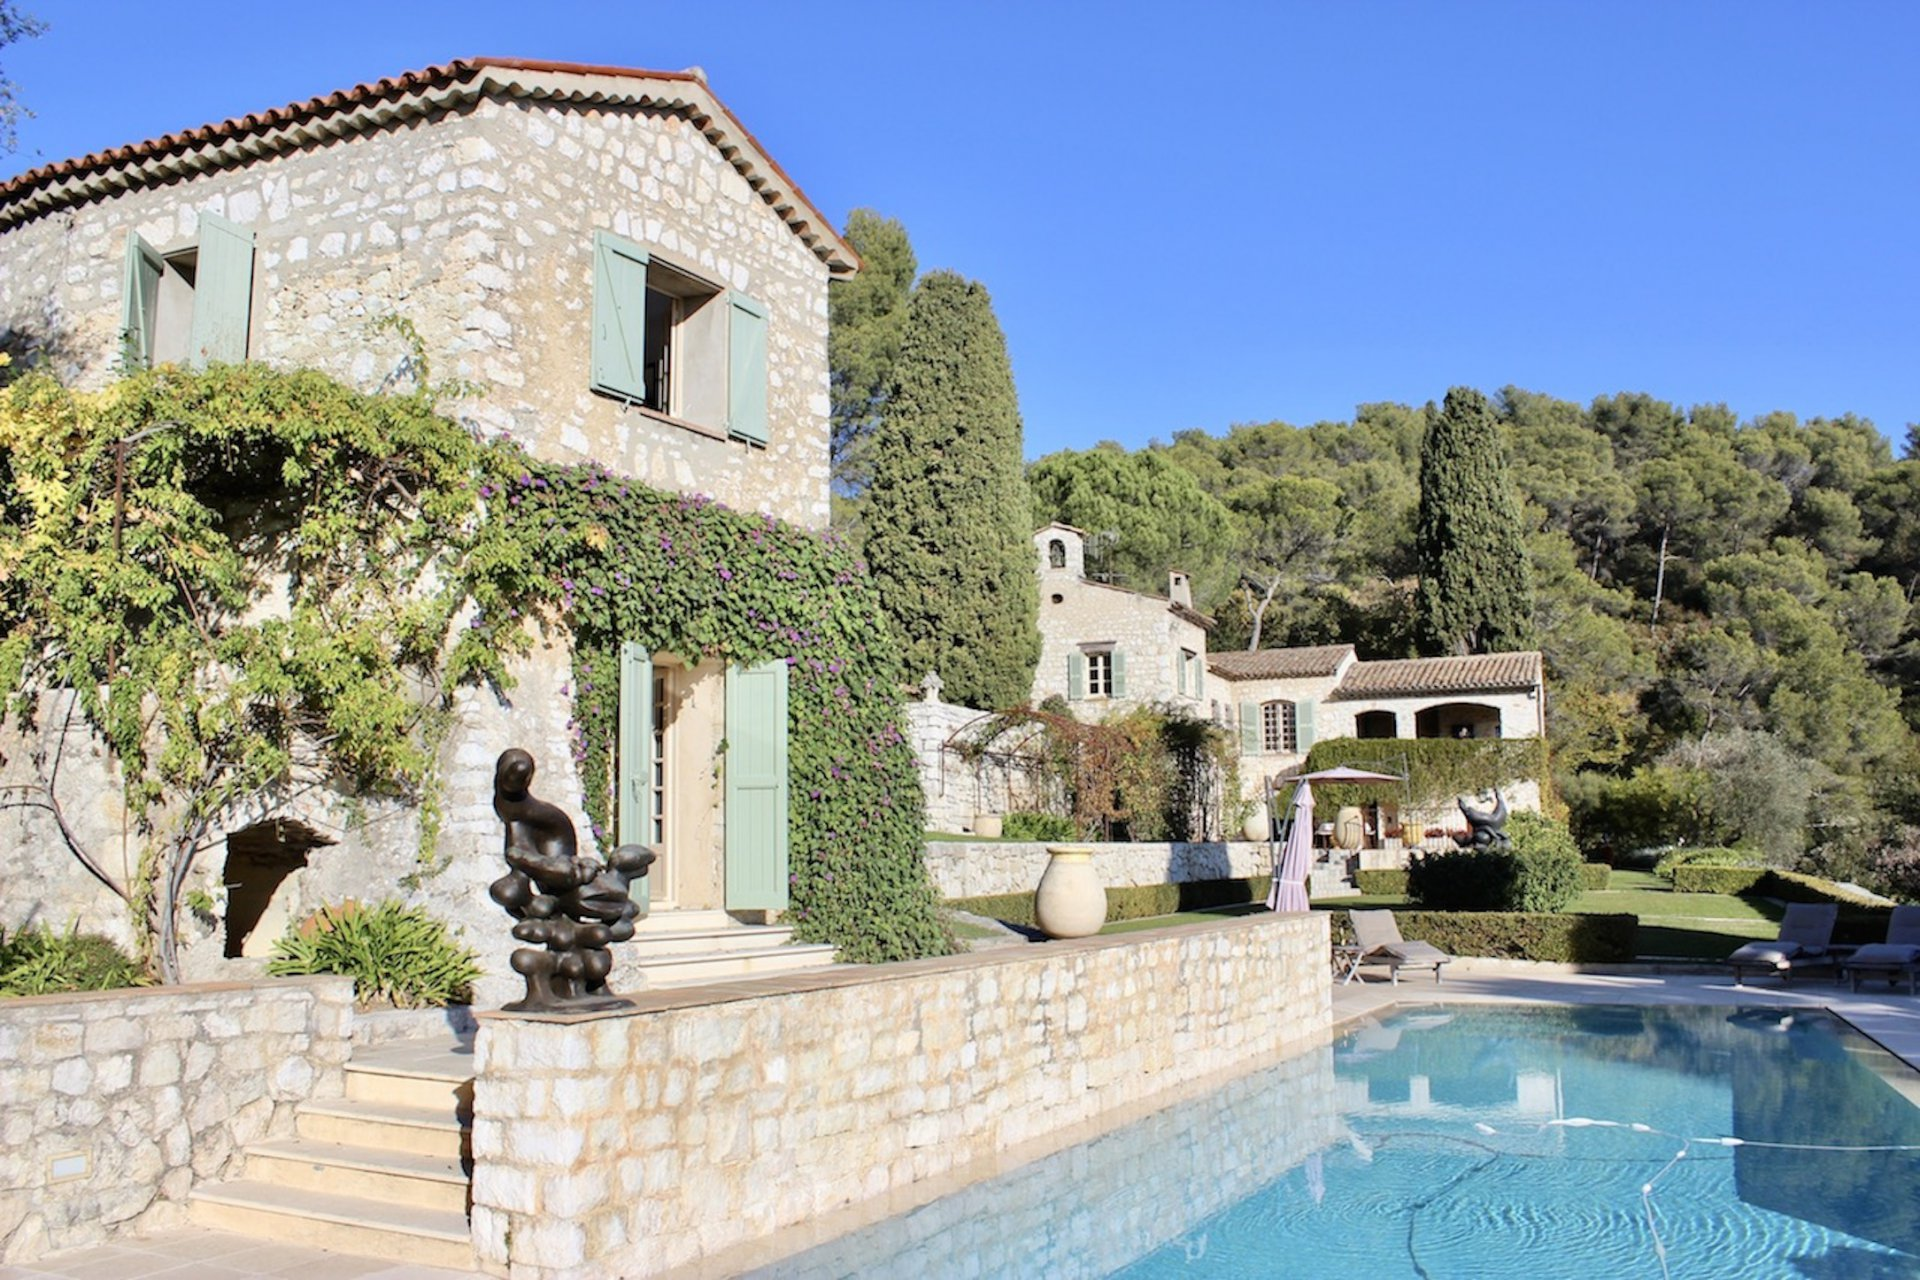 Luxurious villa with pool and guesthouse perched above St. Paul de Venice